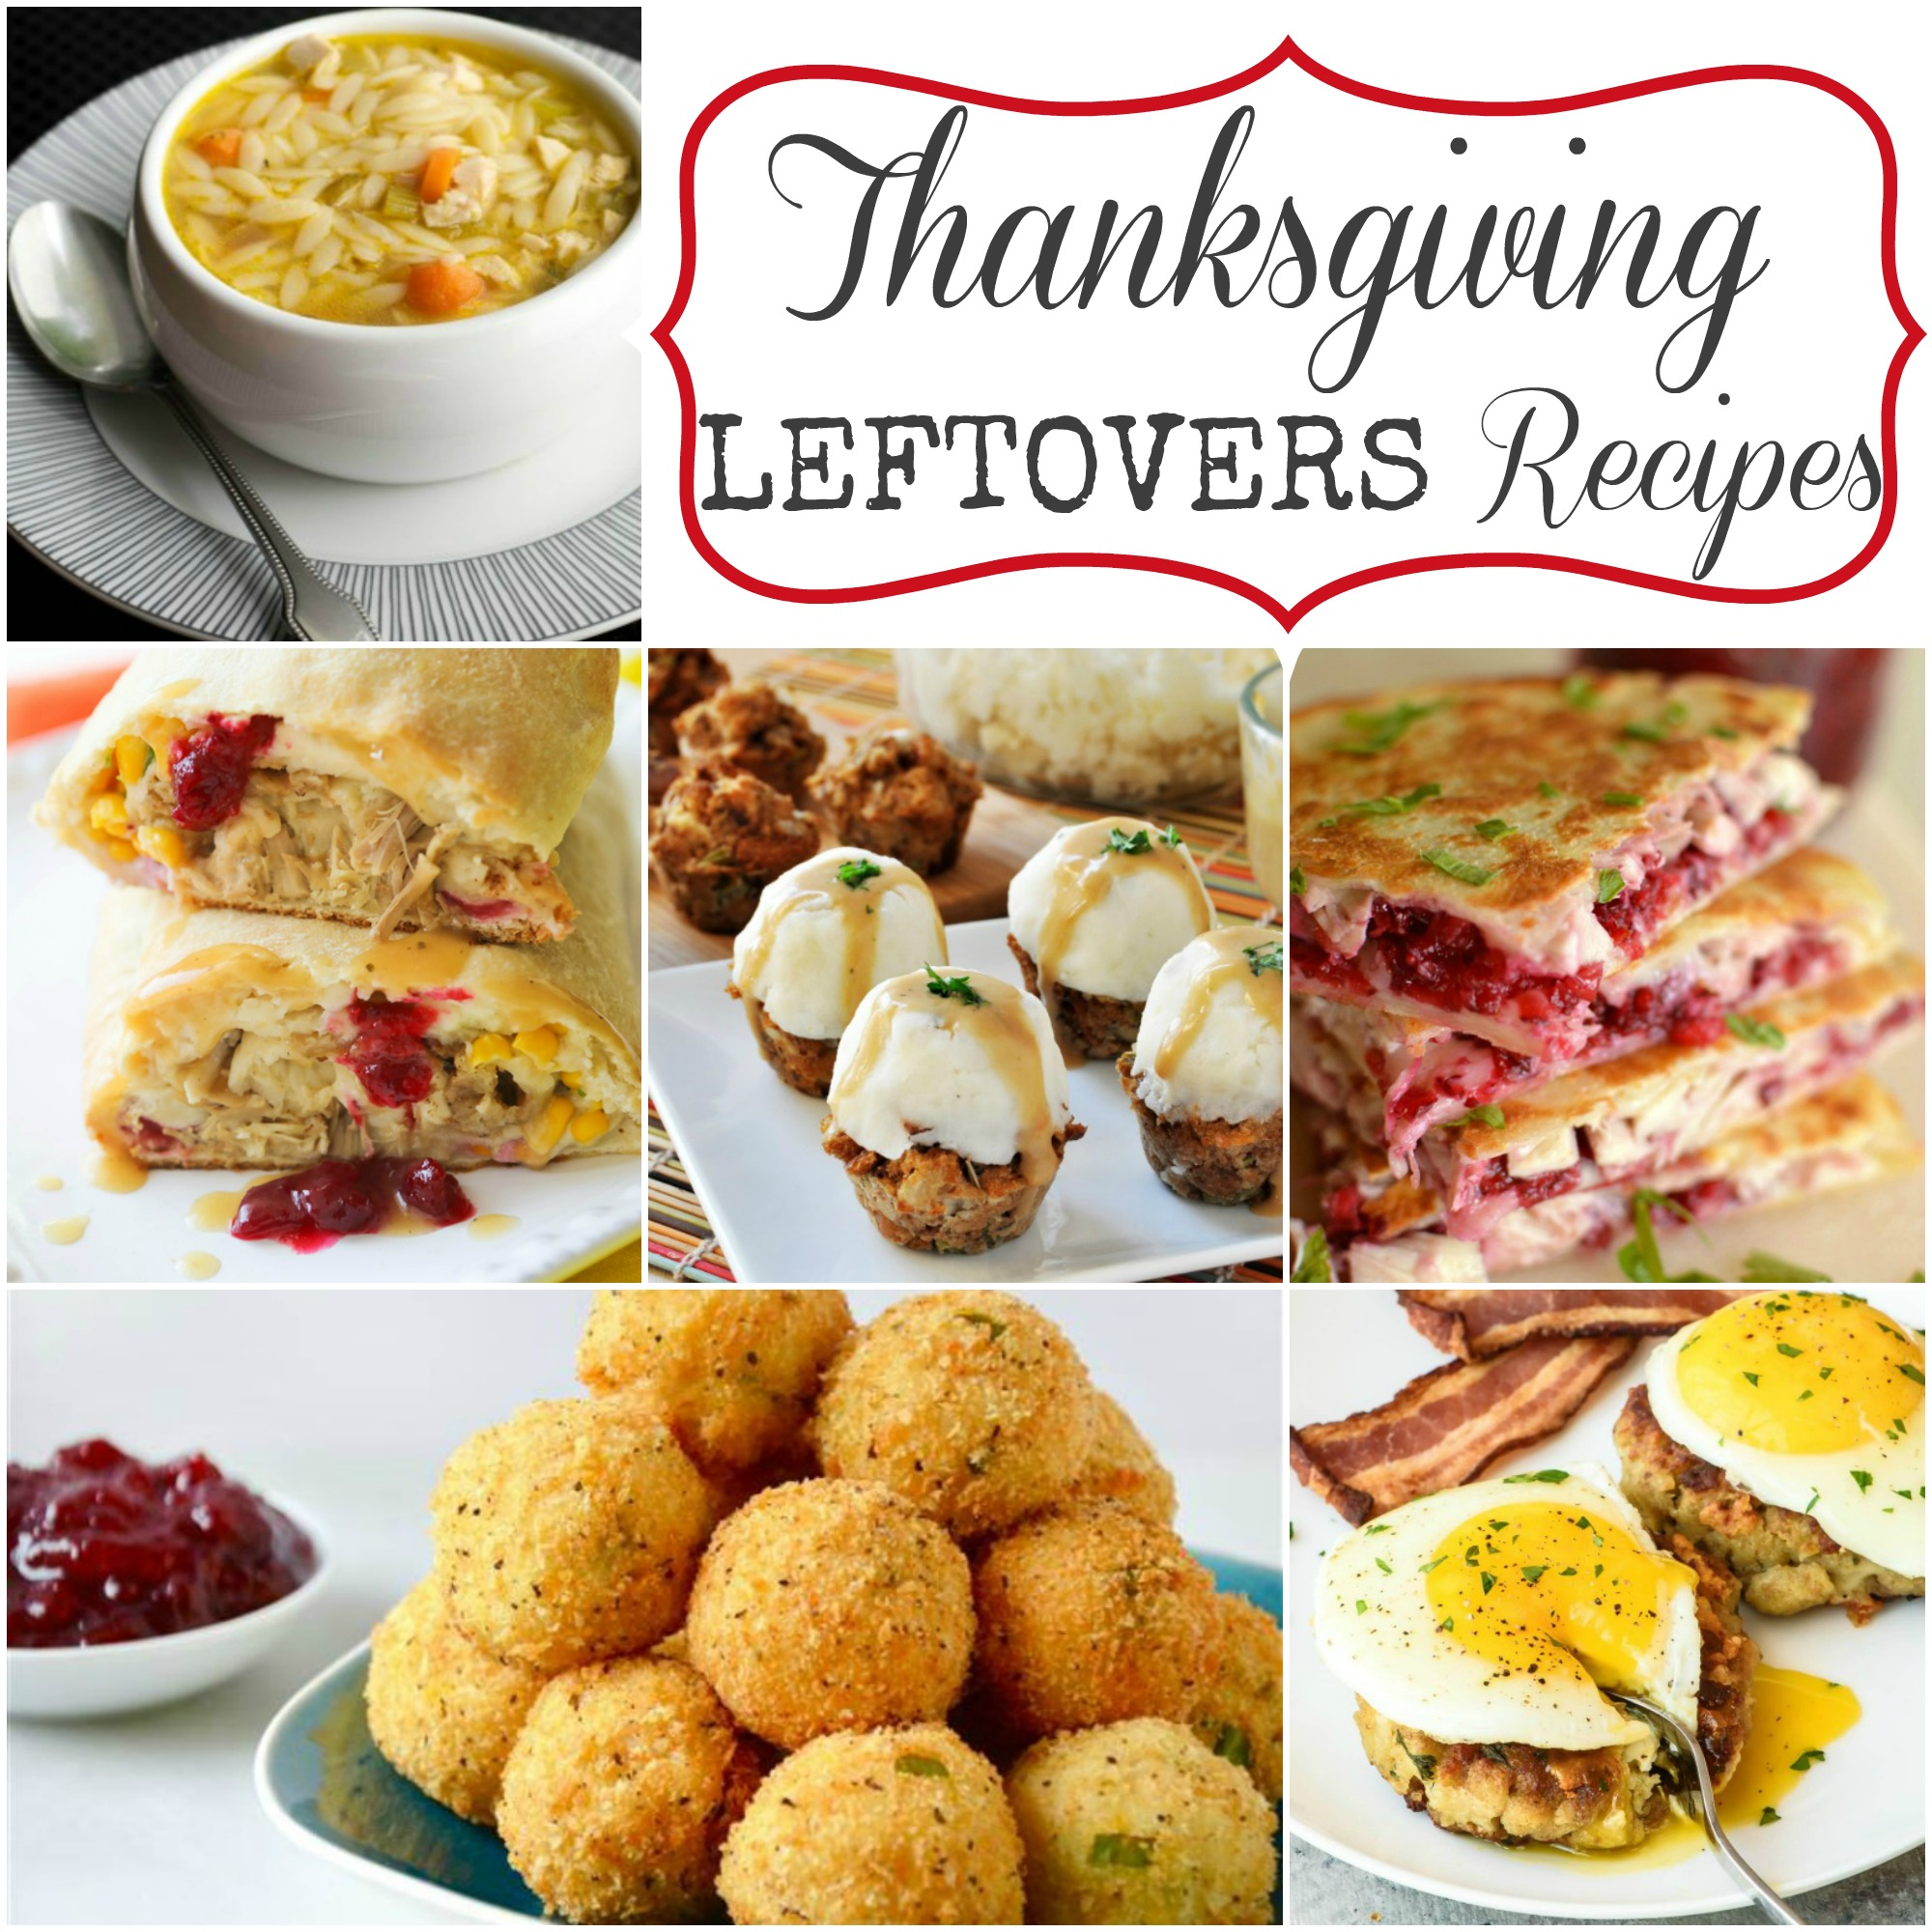 Thanksgiving Leftovers Recipes via Giggles Galore